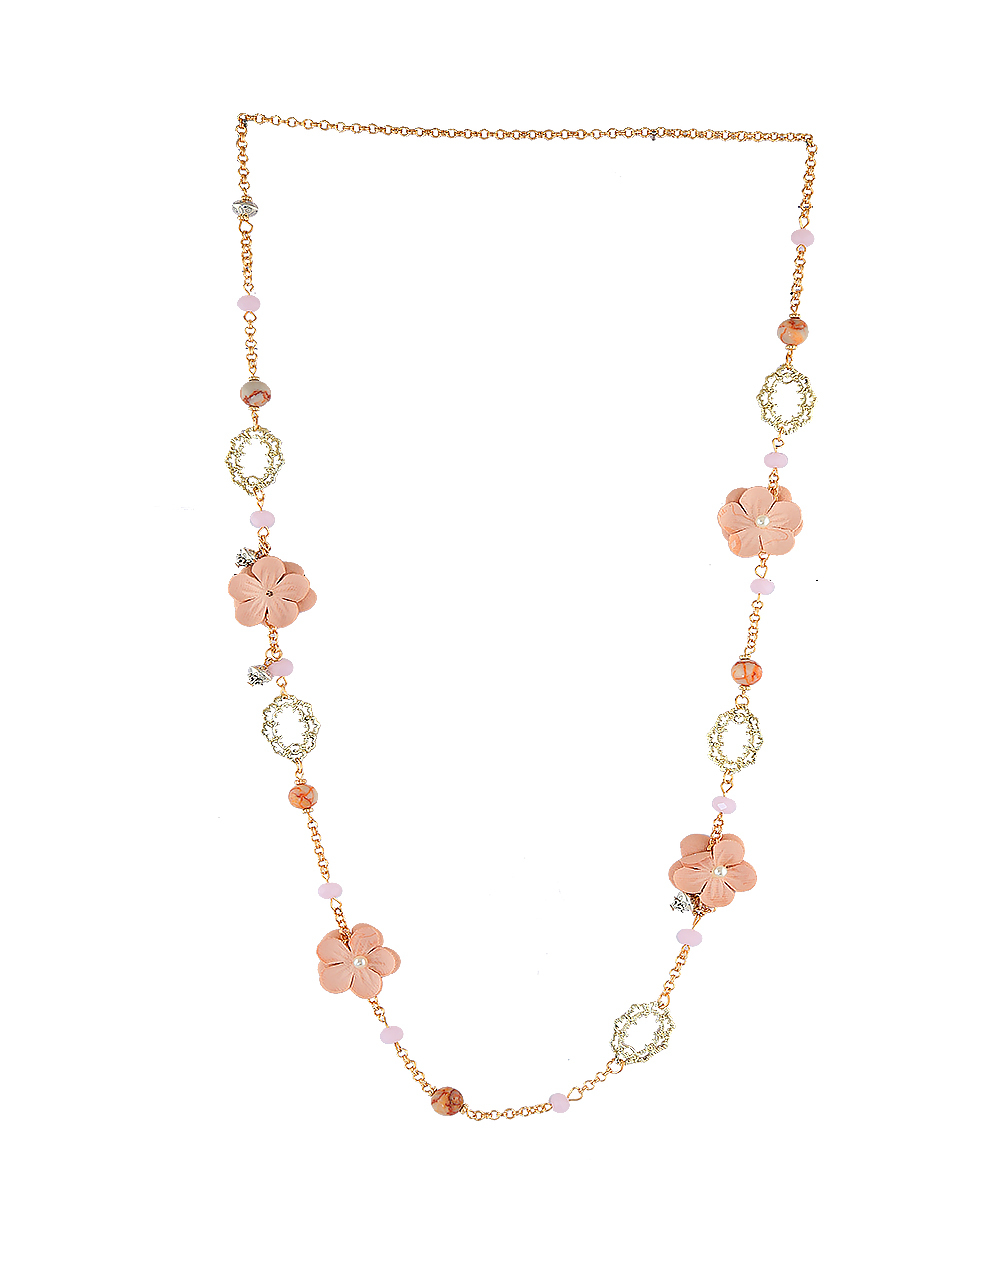 Gold Finish Floral Design Fashionable Necklace